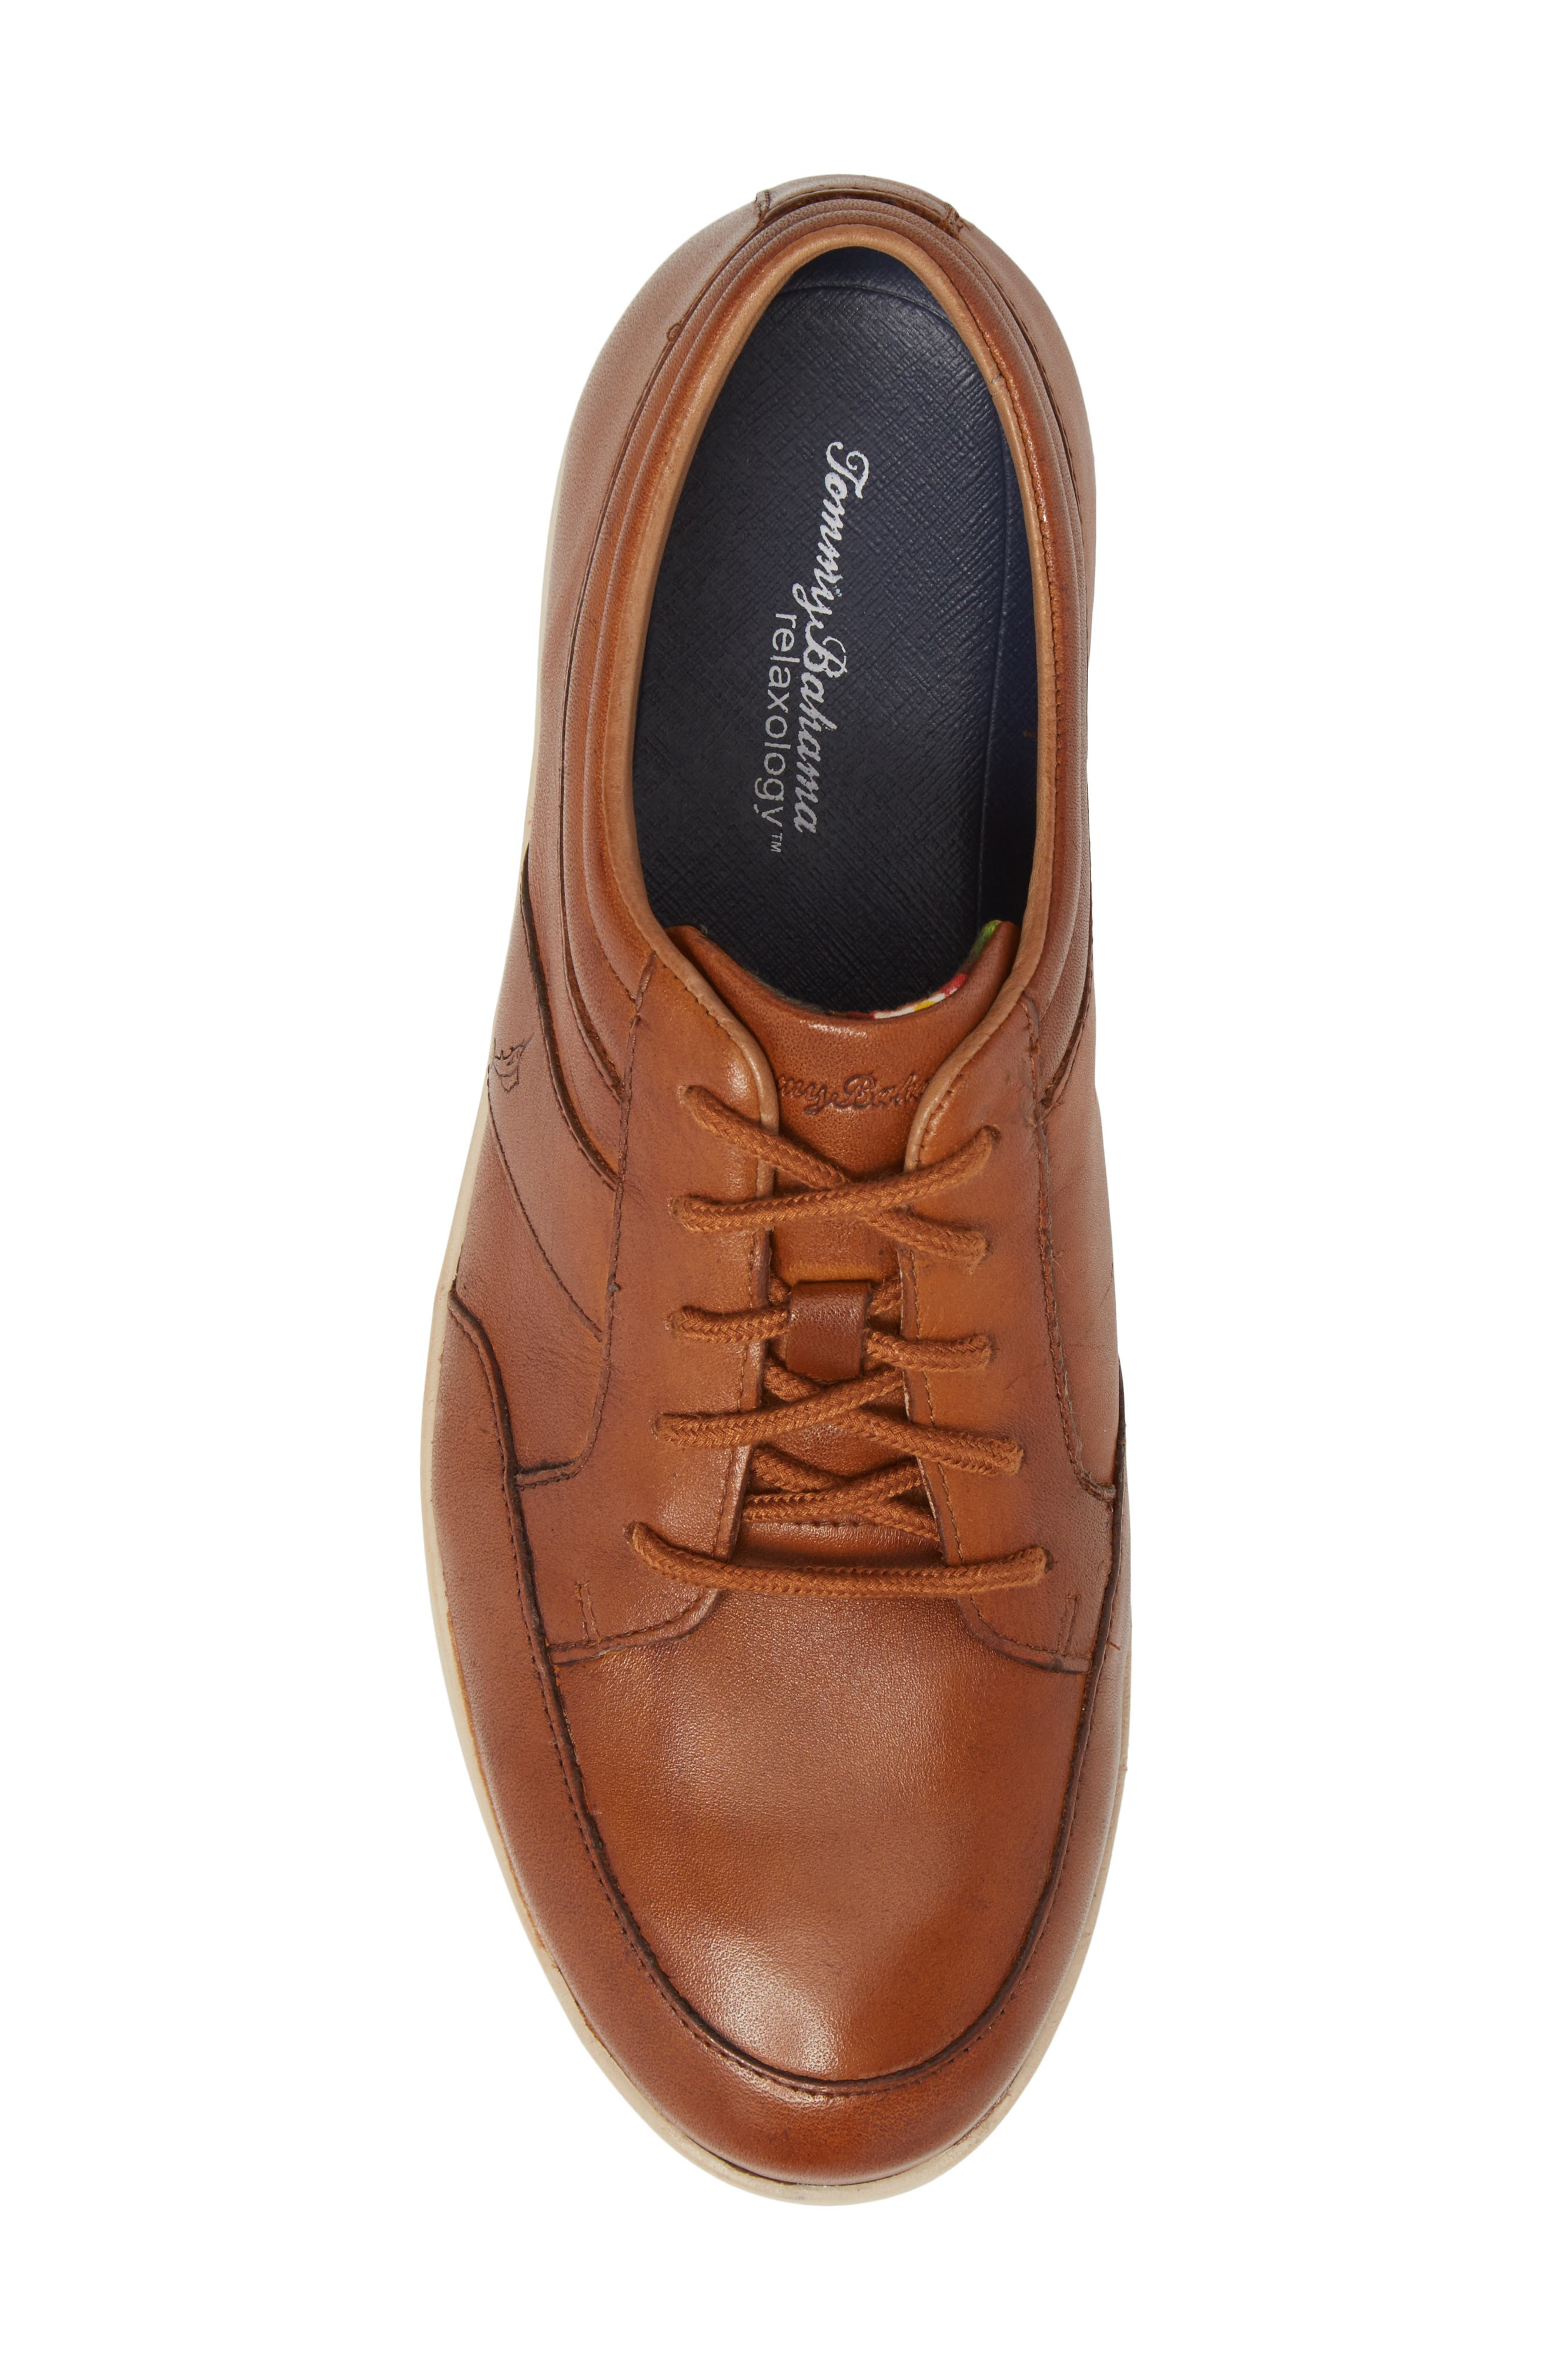 Caicos Authentic Low Top Sneaker,                             Alternate thumbnail 5, color,                             TAN LEATHER